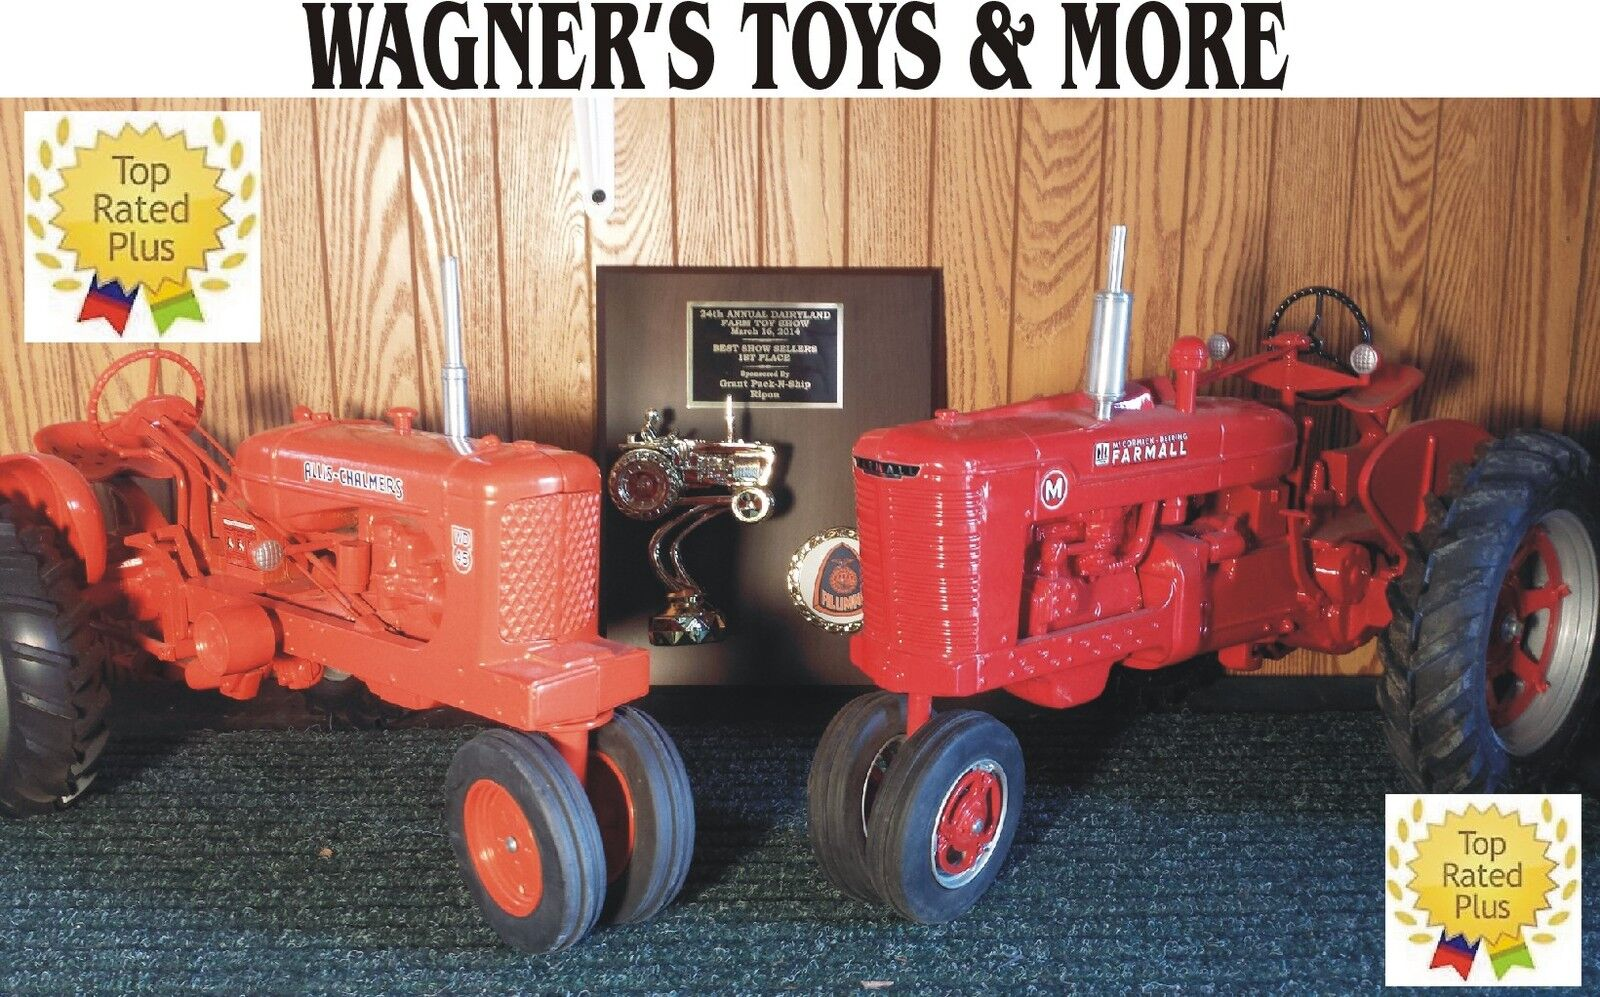 Wagner stoys&More